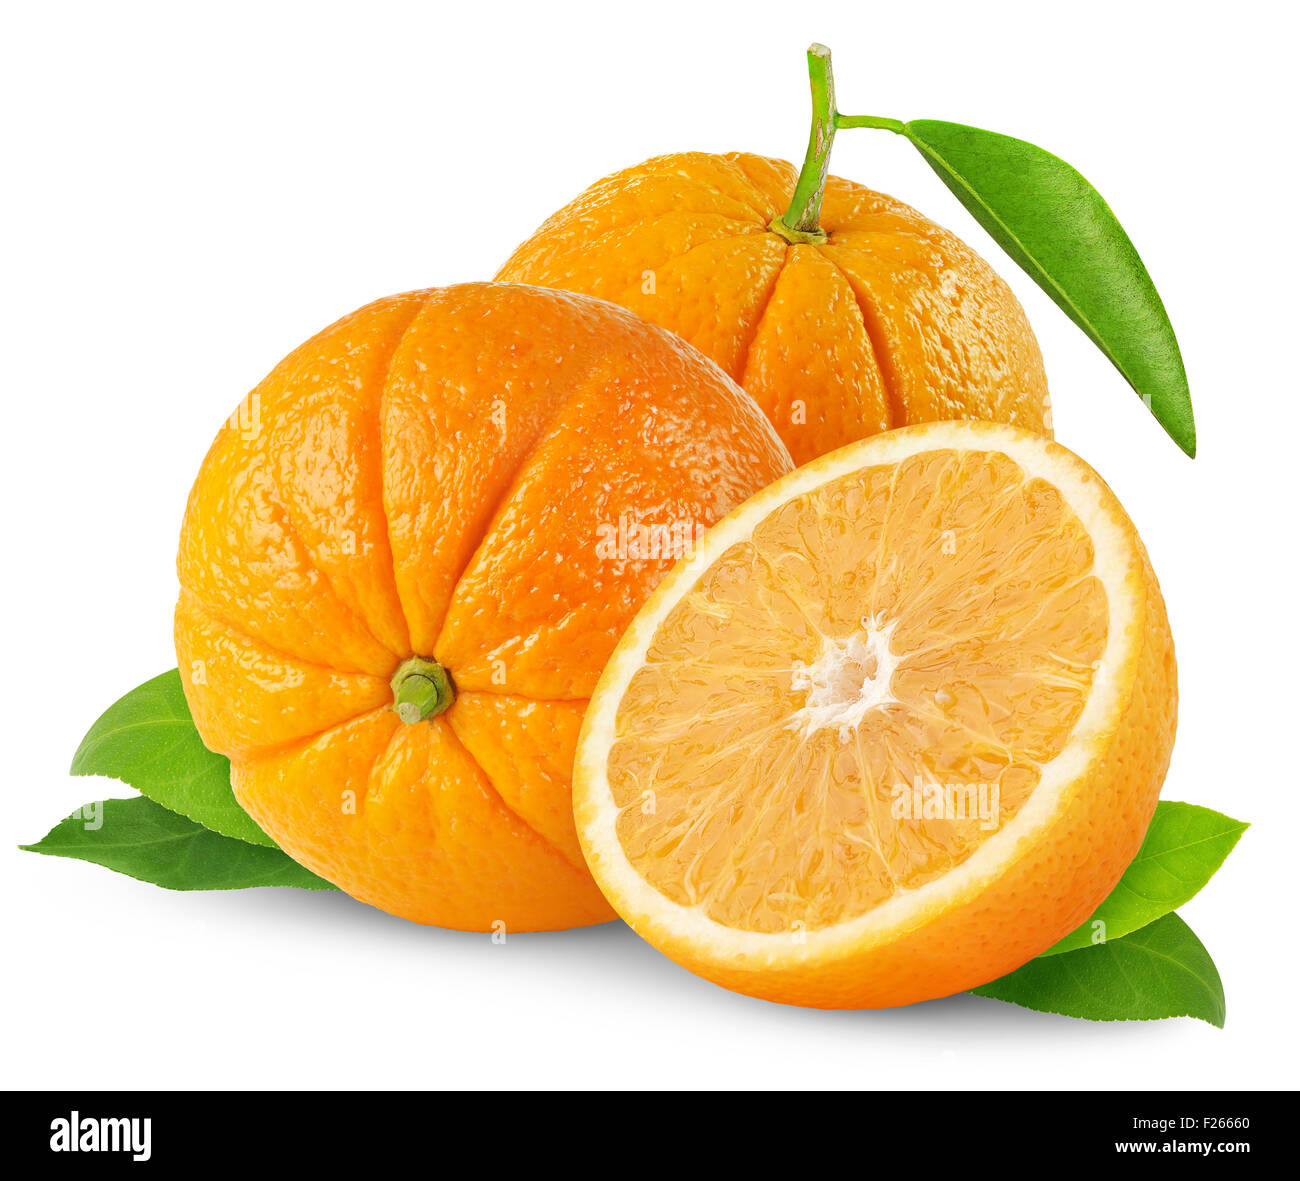 Two oranges isolated on white - Stock Image